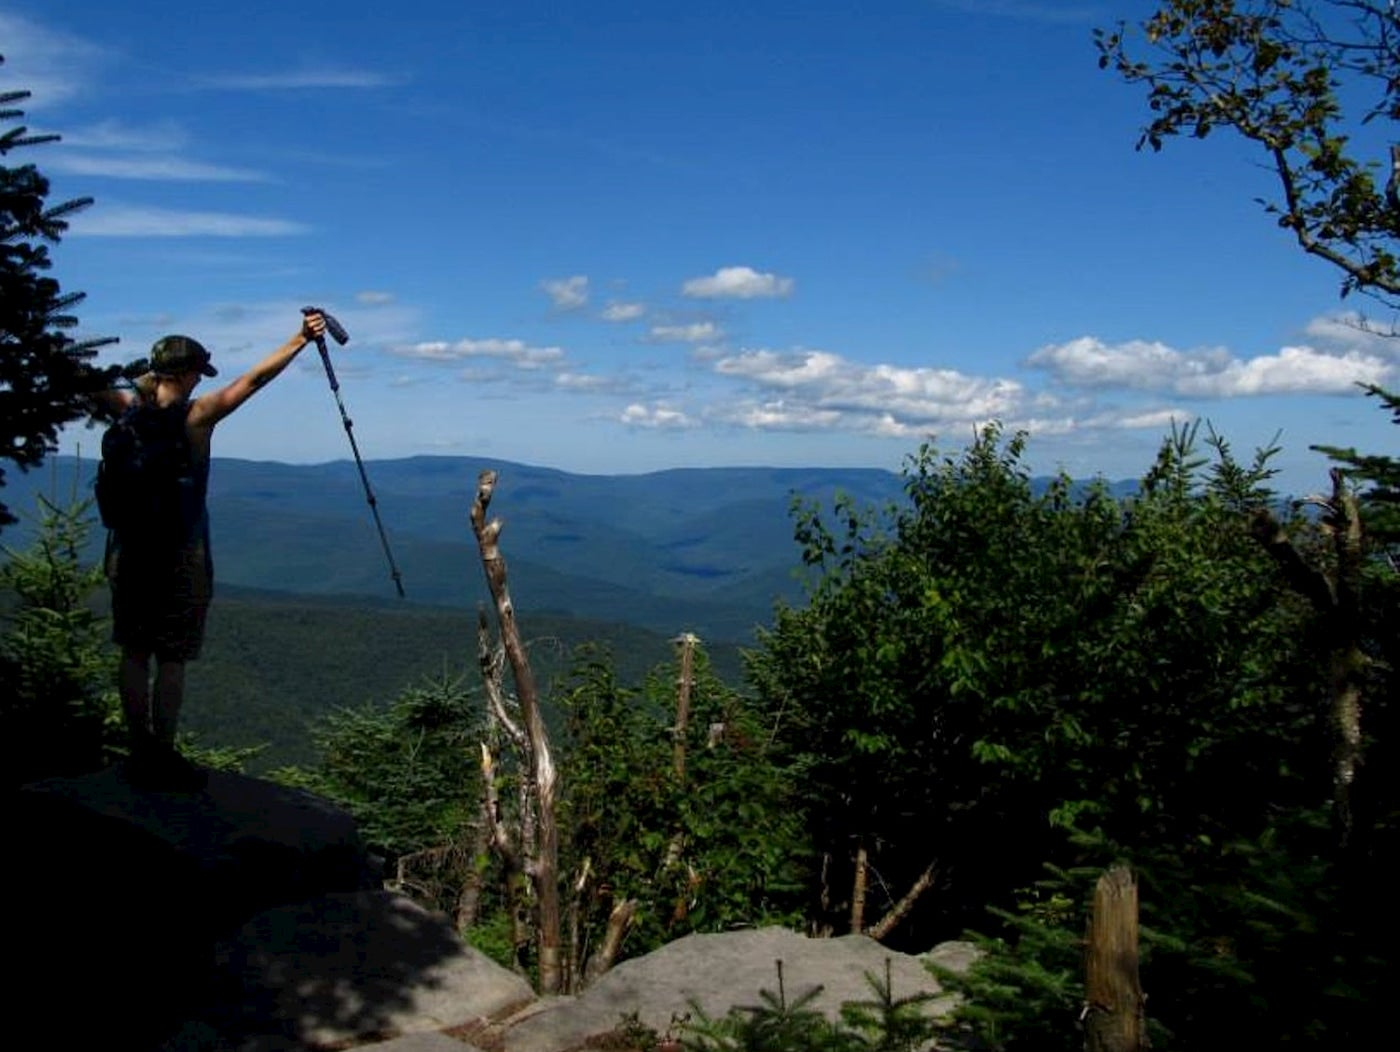 Women hiker standing with trekking poles on the edge of giant ledge.